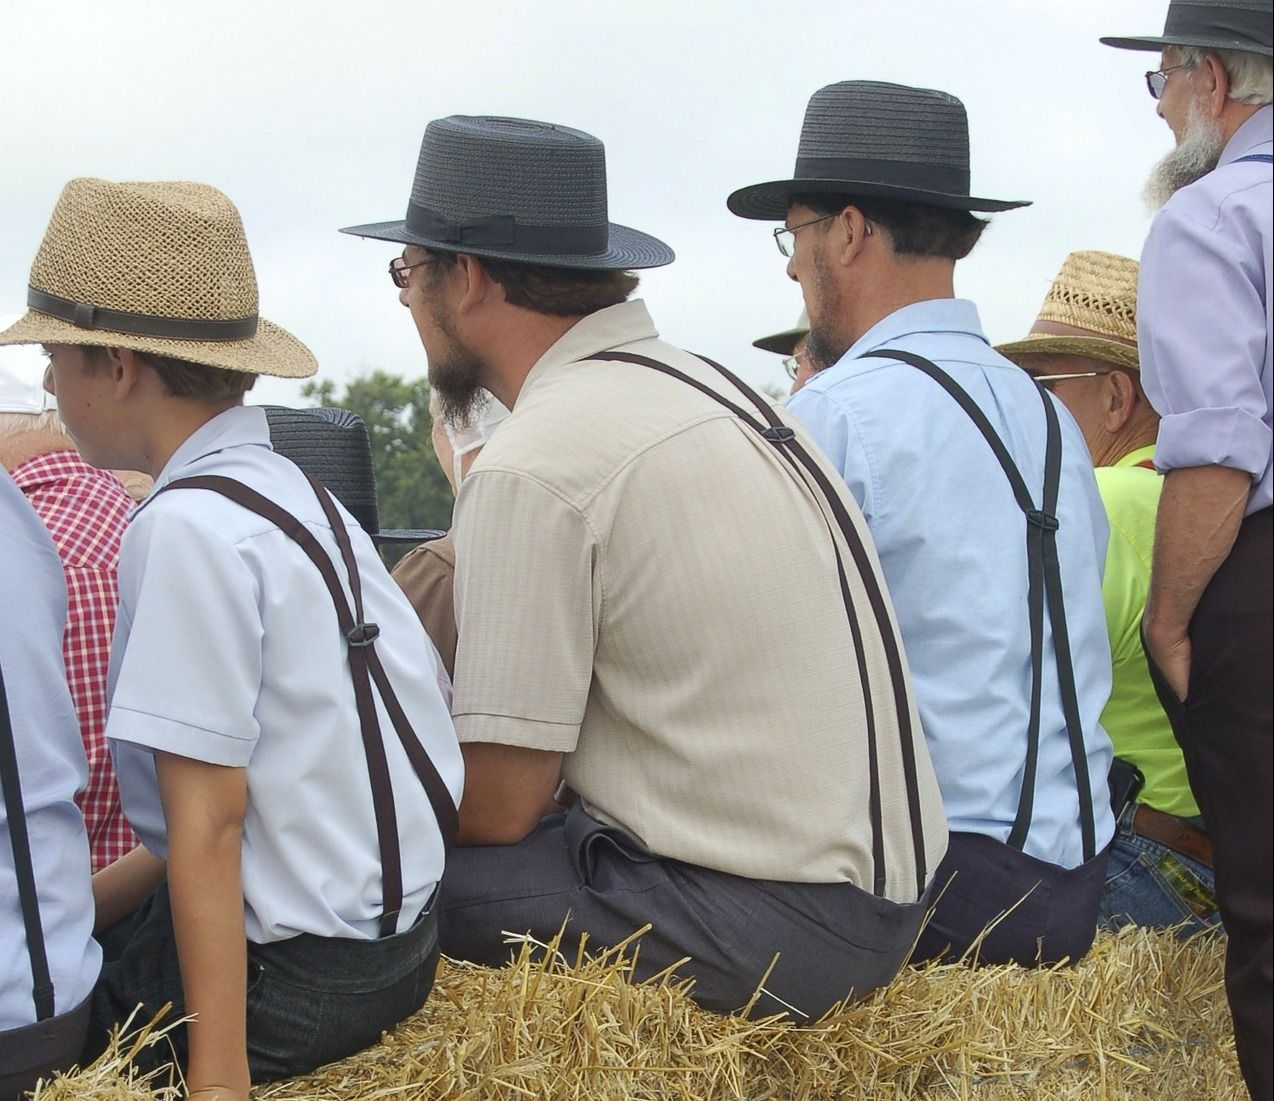 The Hidden Meaning Behind Amish Clothing Rules